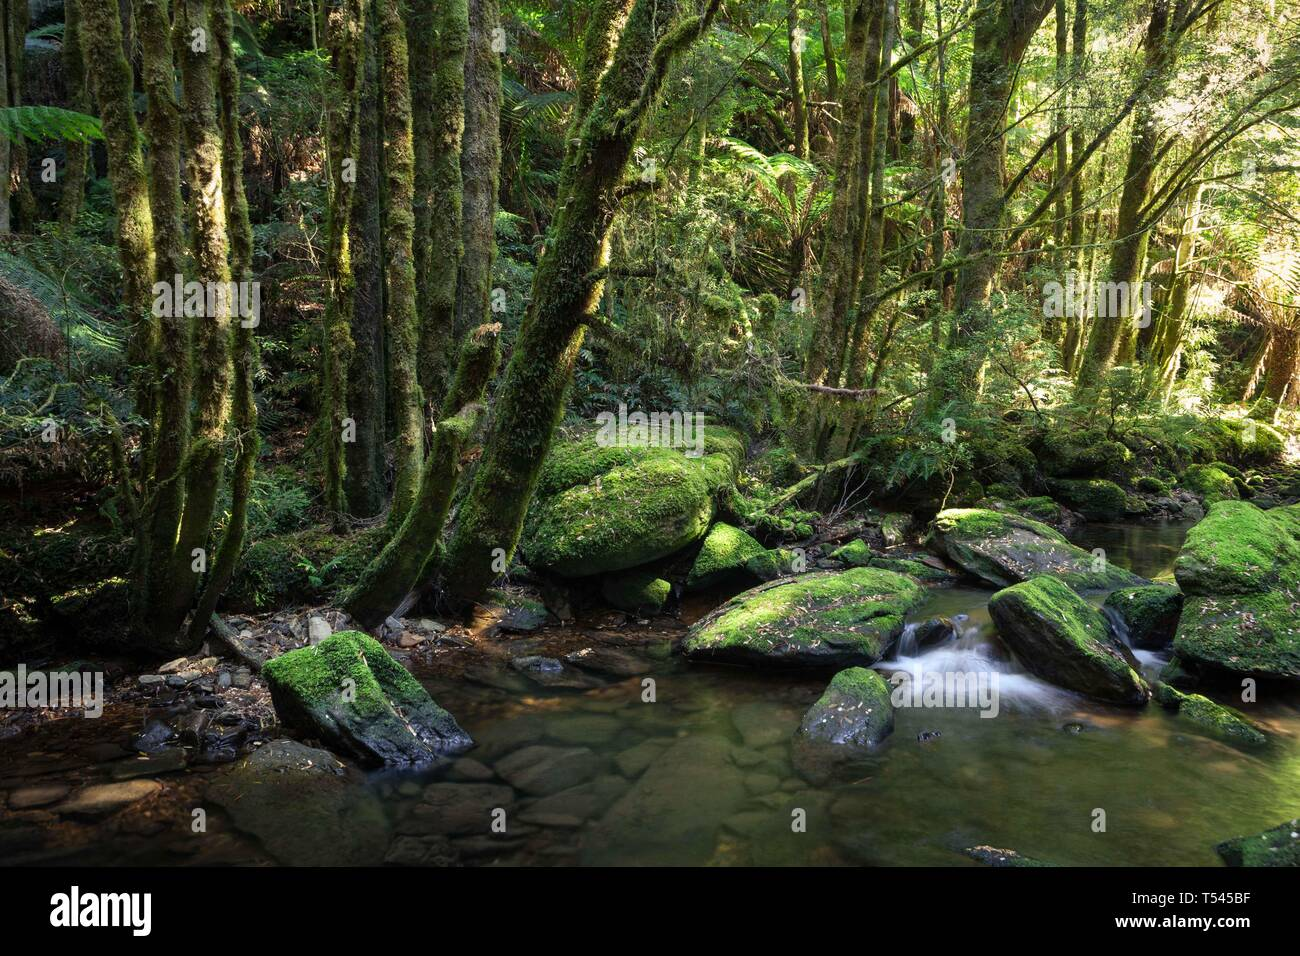 On the floor of the rainforest a shallow stream flows past moss-covered rocks and huge towering trees. - Stock Image